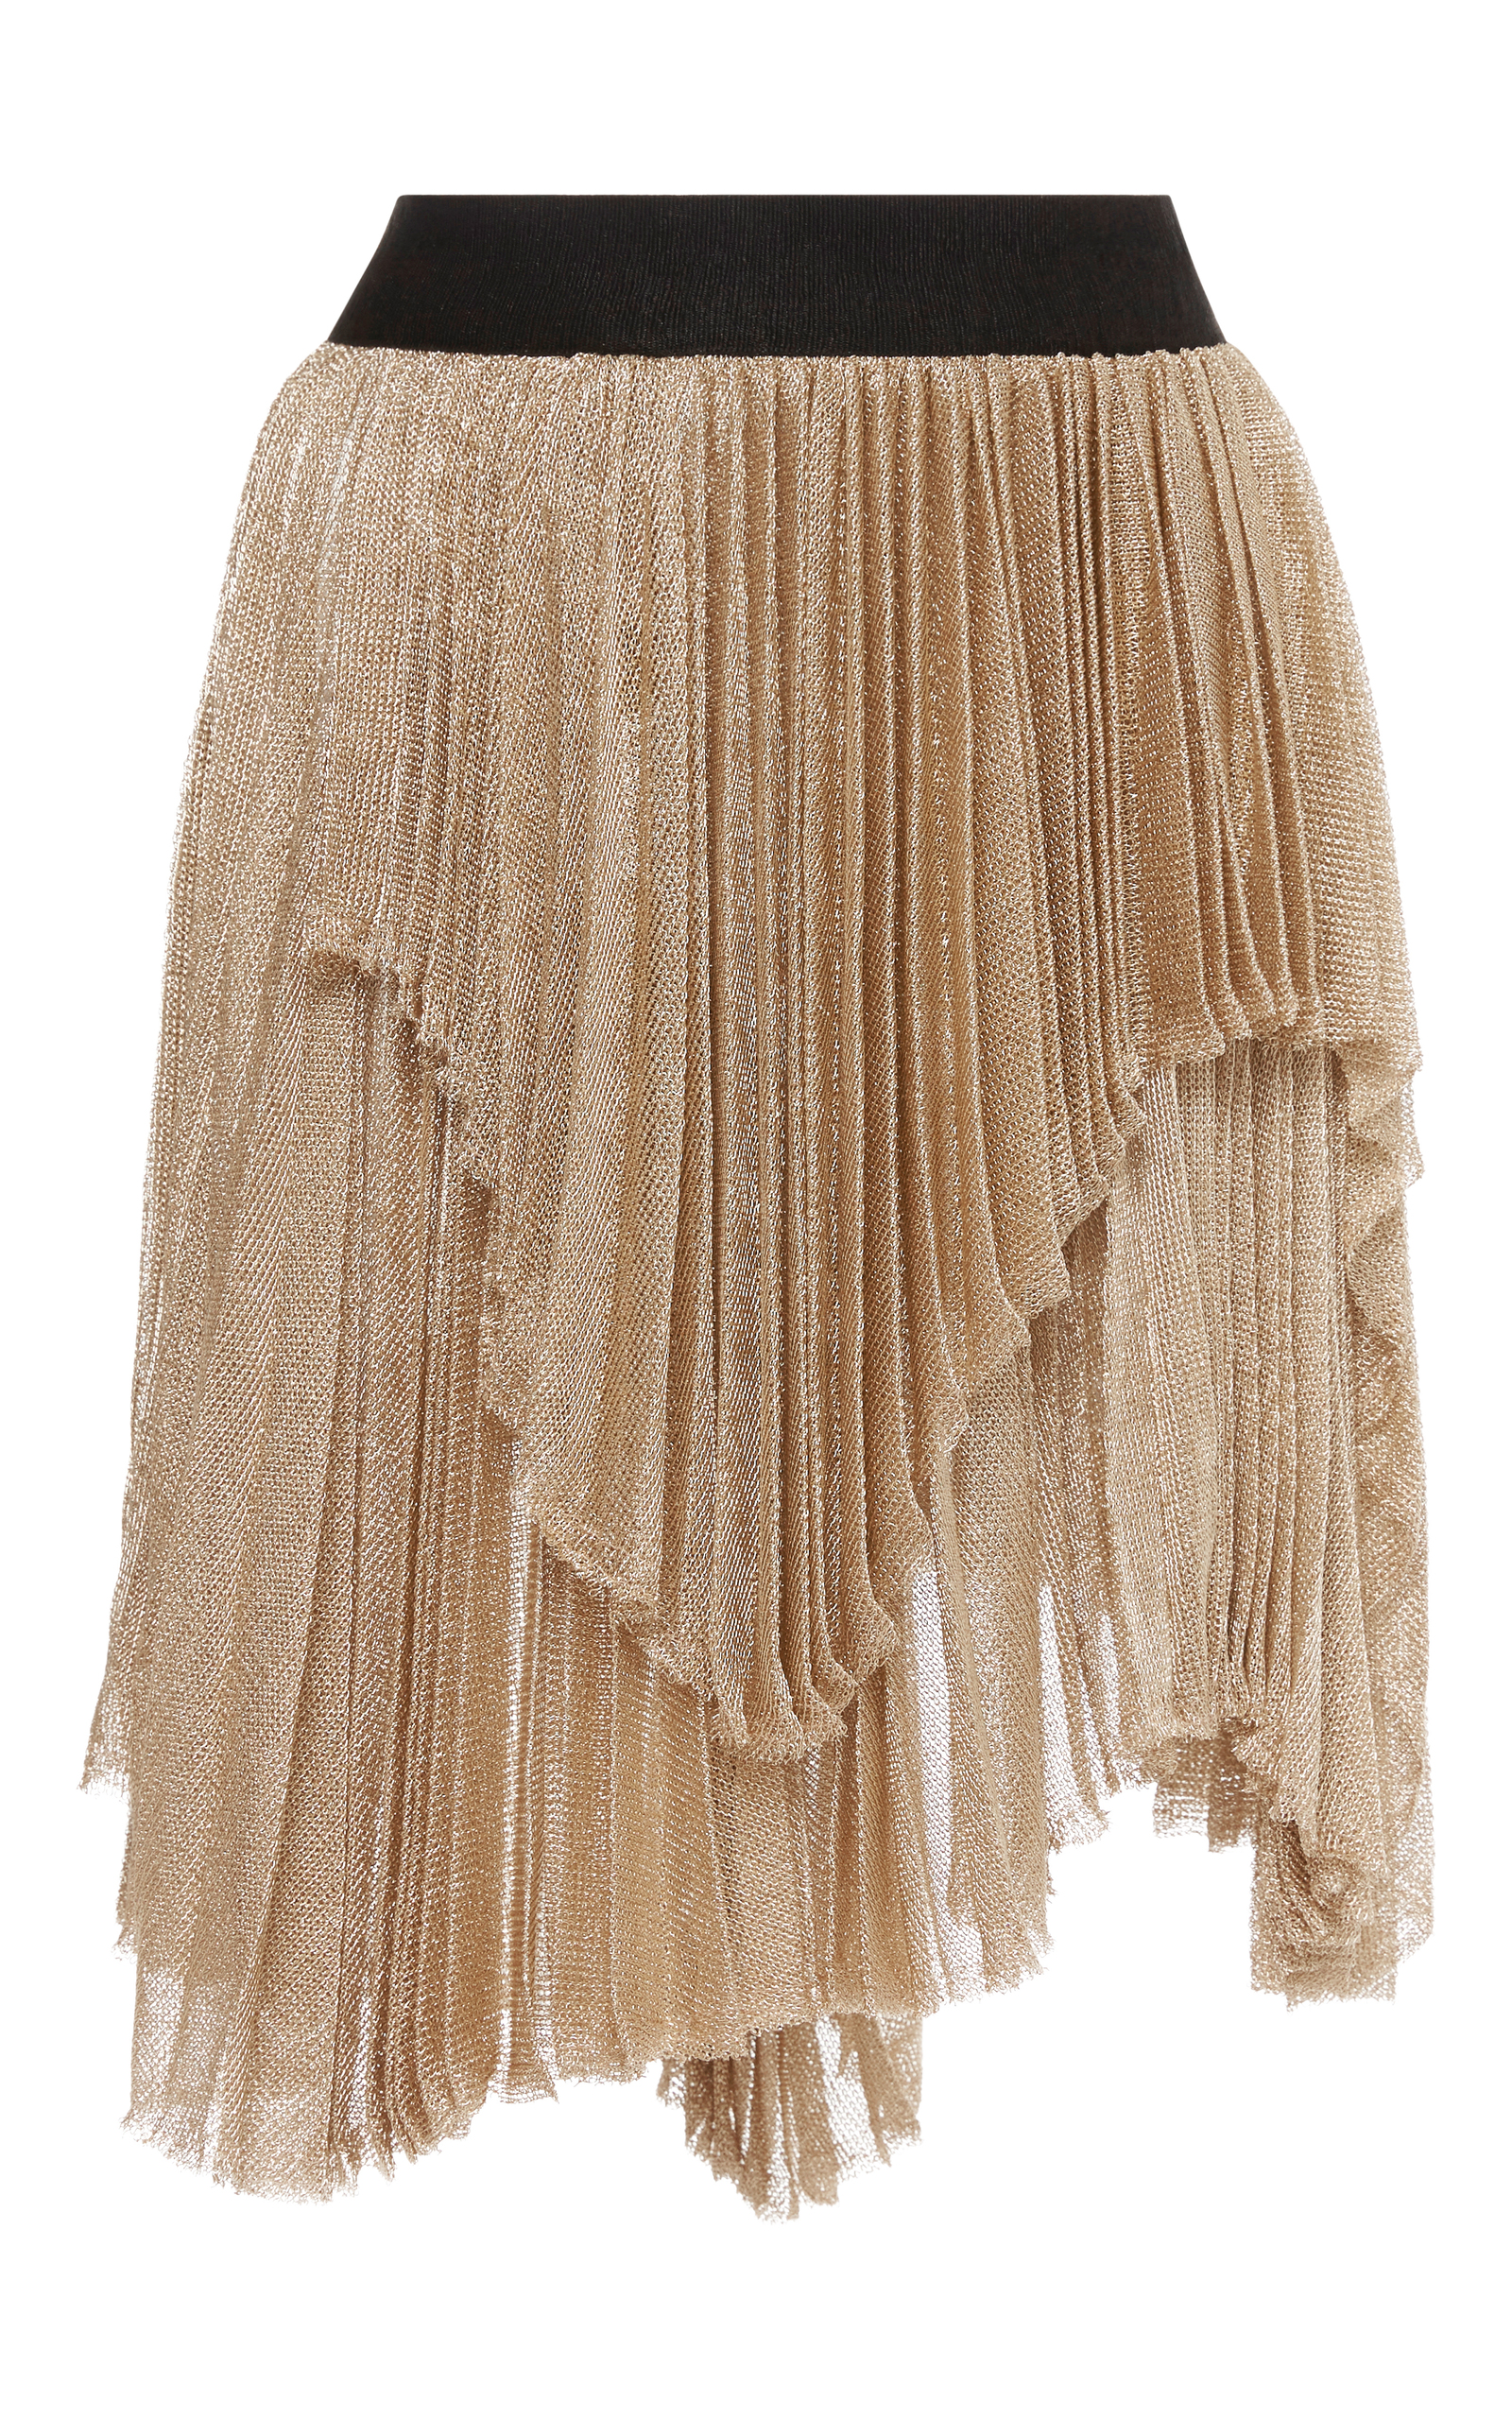 c225c6e9e Risha Pleated Mini Skirt by Maria Lucia Hohan | Moda Operandi